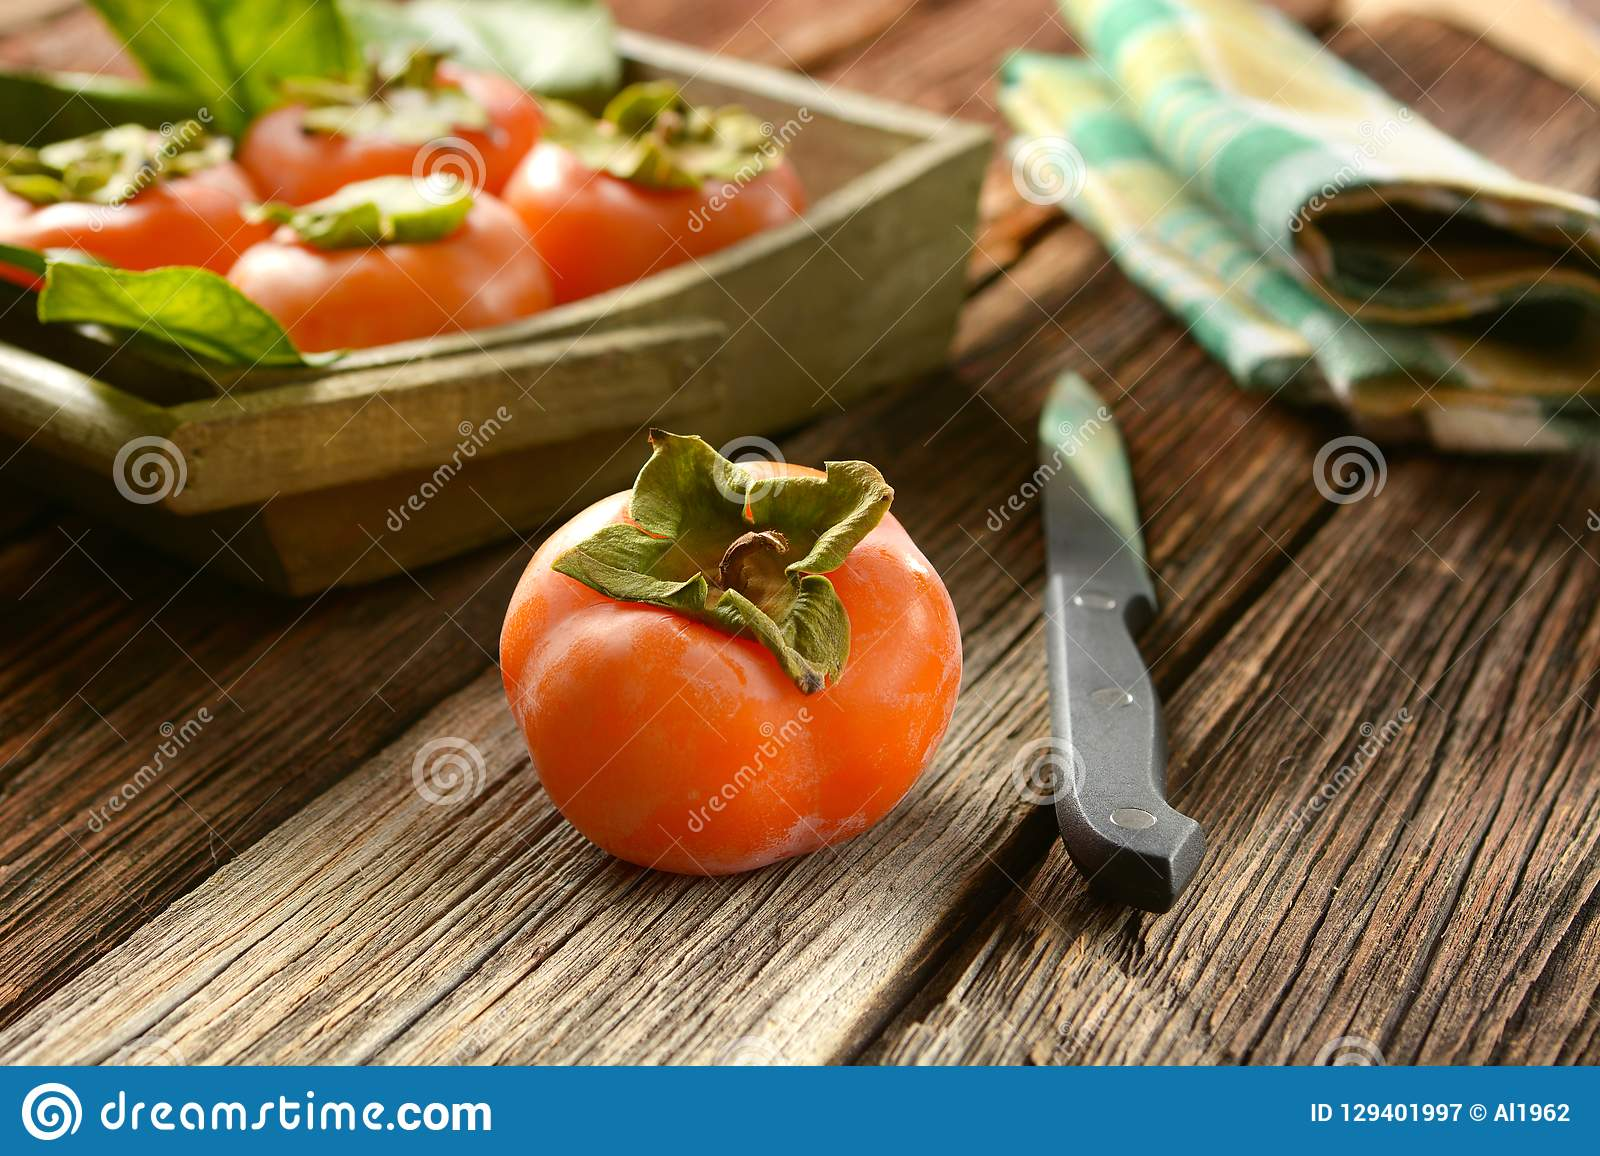 Pile of ripe persimmons on wooden table. Closeup royalty free stock photography